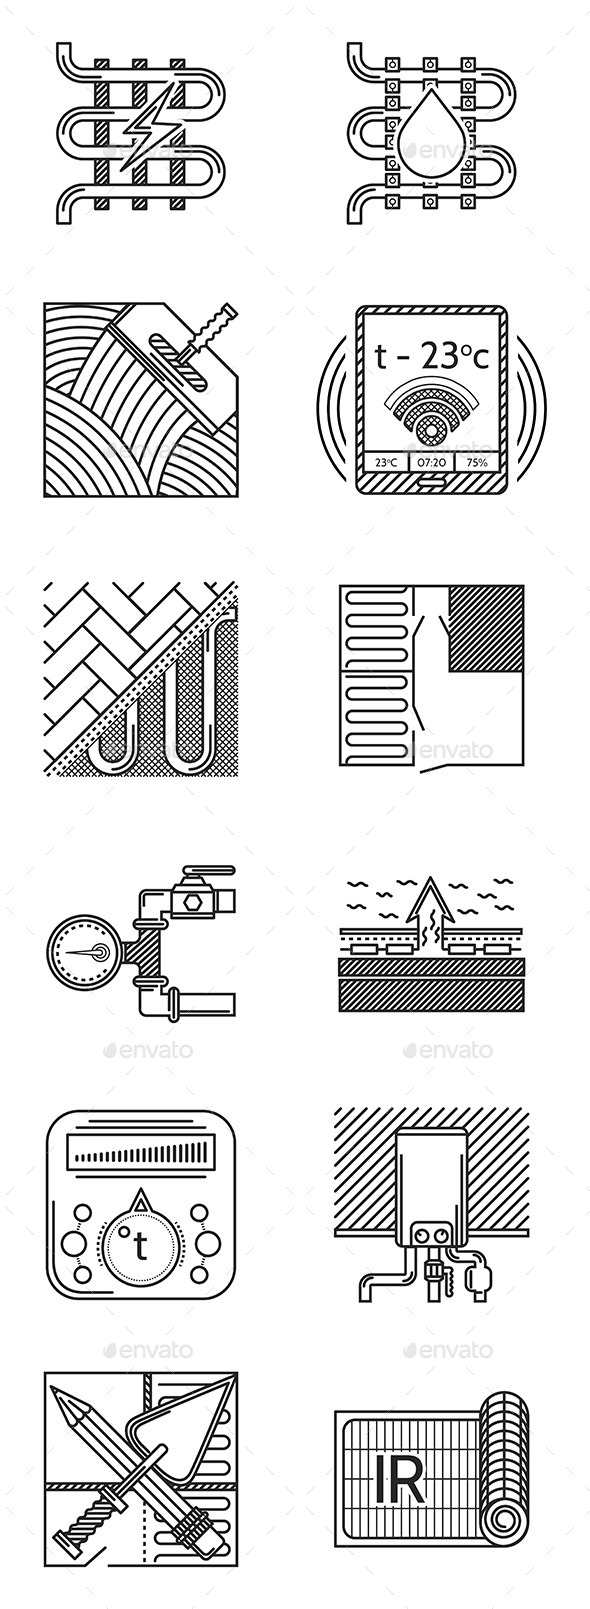 GraphicRiver Heated Floor Icons 10522860